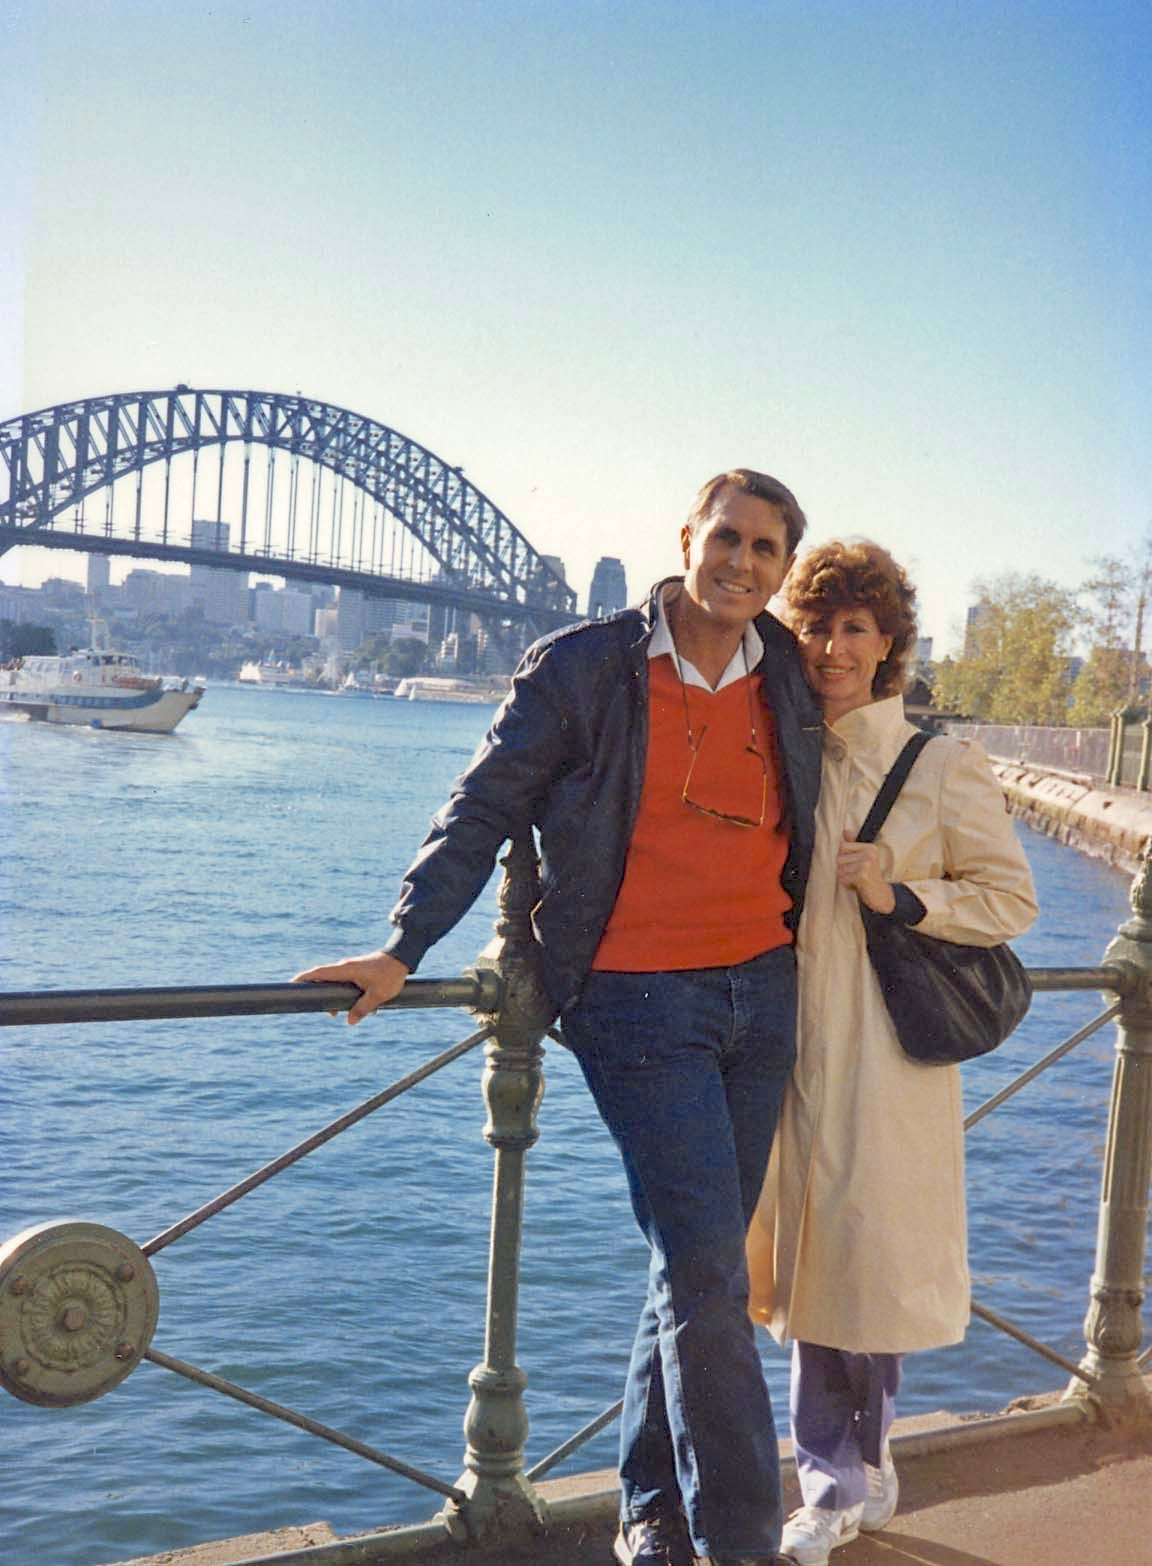 Tom and Betty on a bridge in Sidney, Trip to Australia June 23 - July 1, 1985 with Jurgen and Gisla - Version 2